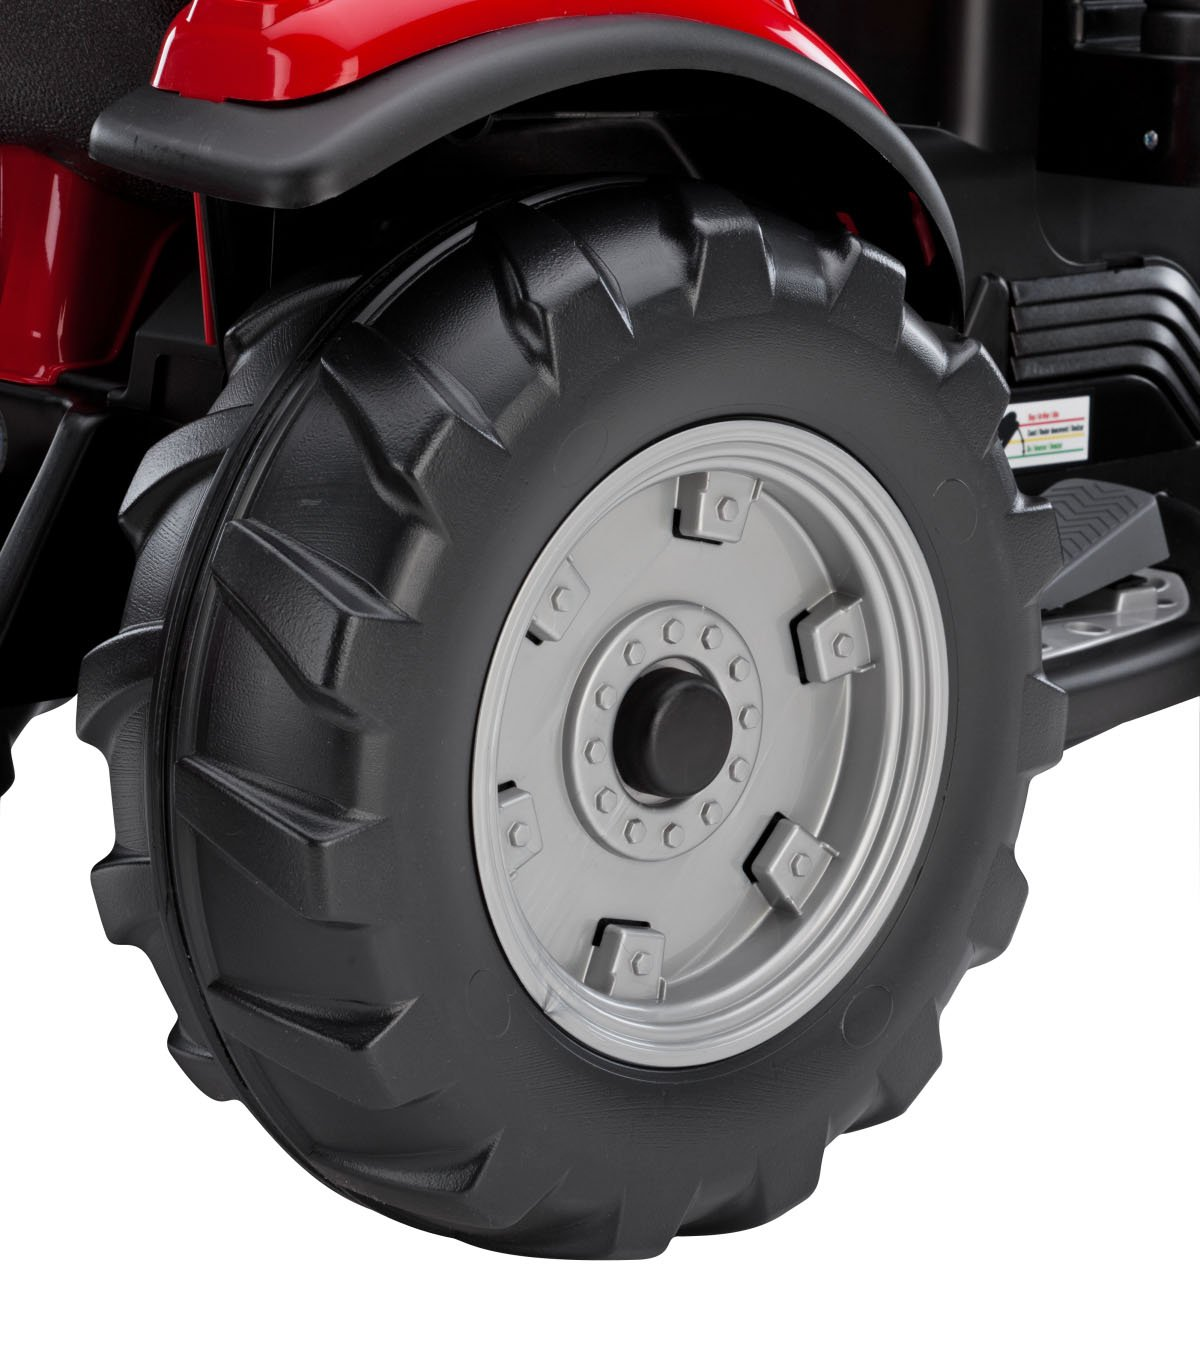 Peg Perego Case IH Magnum Tractor/Trailer by Peg Perego (Image #3)